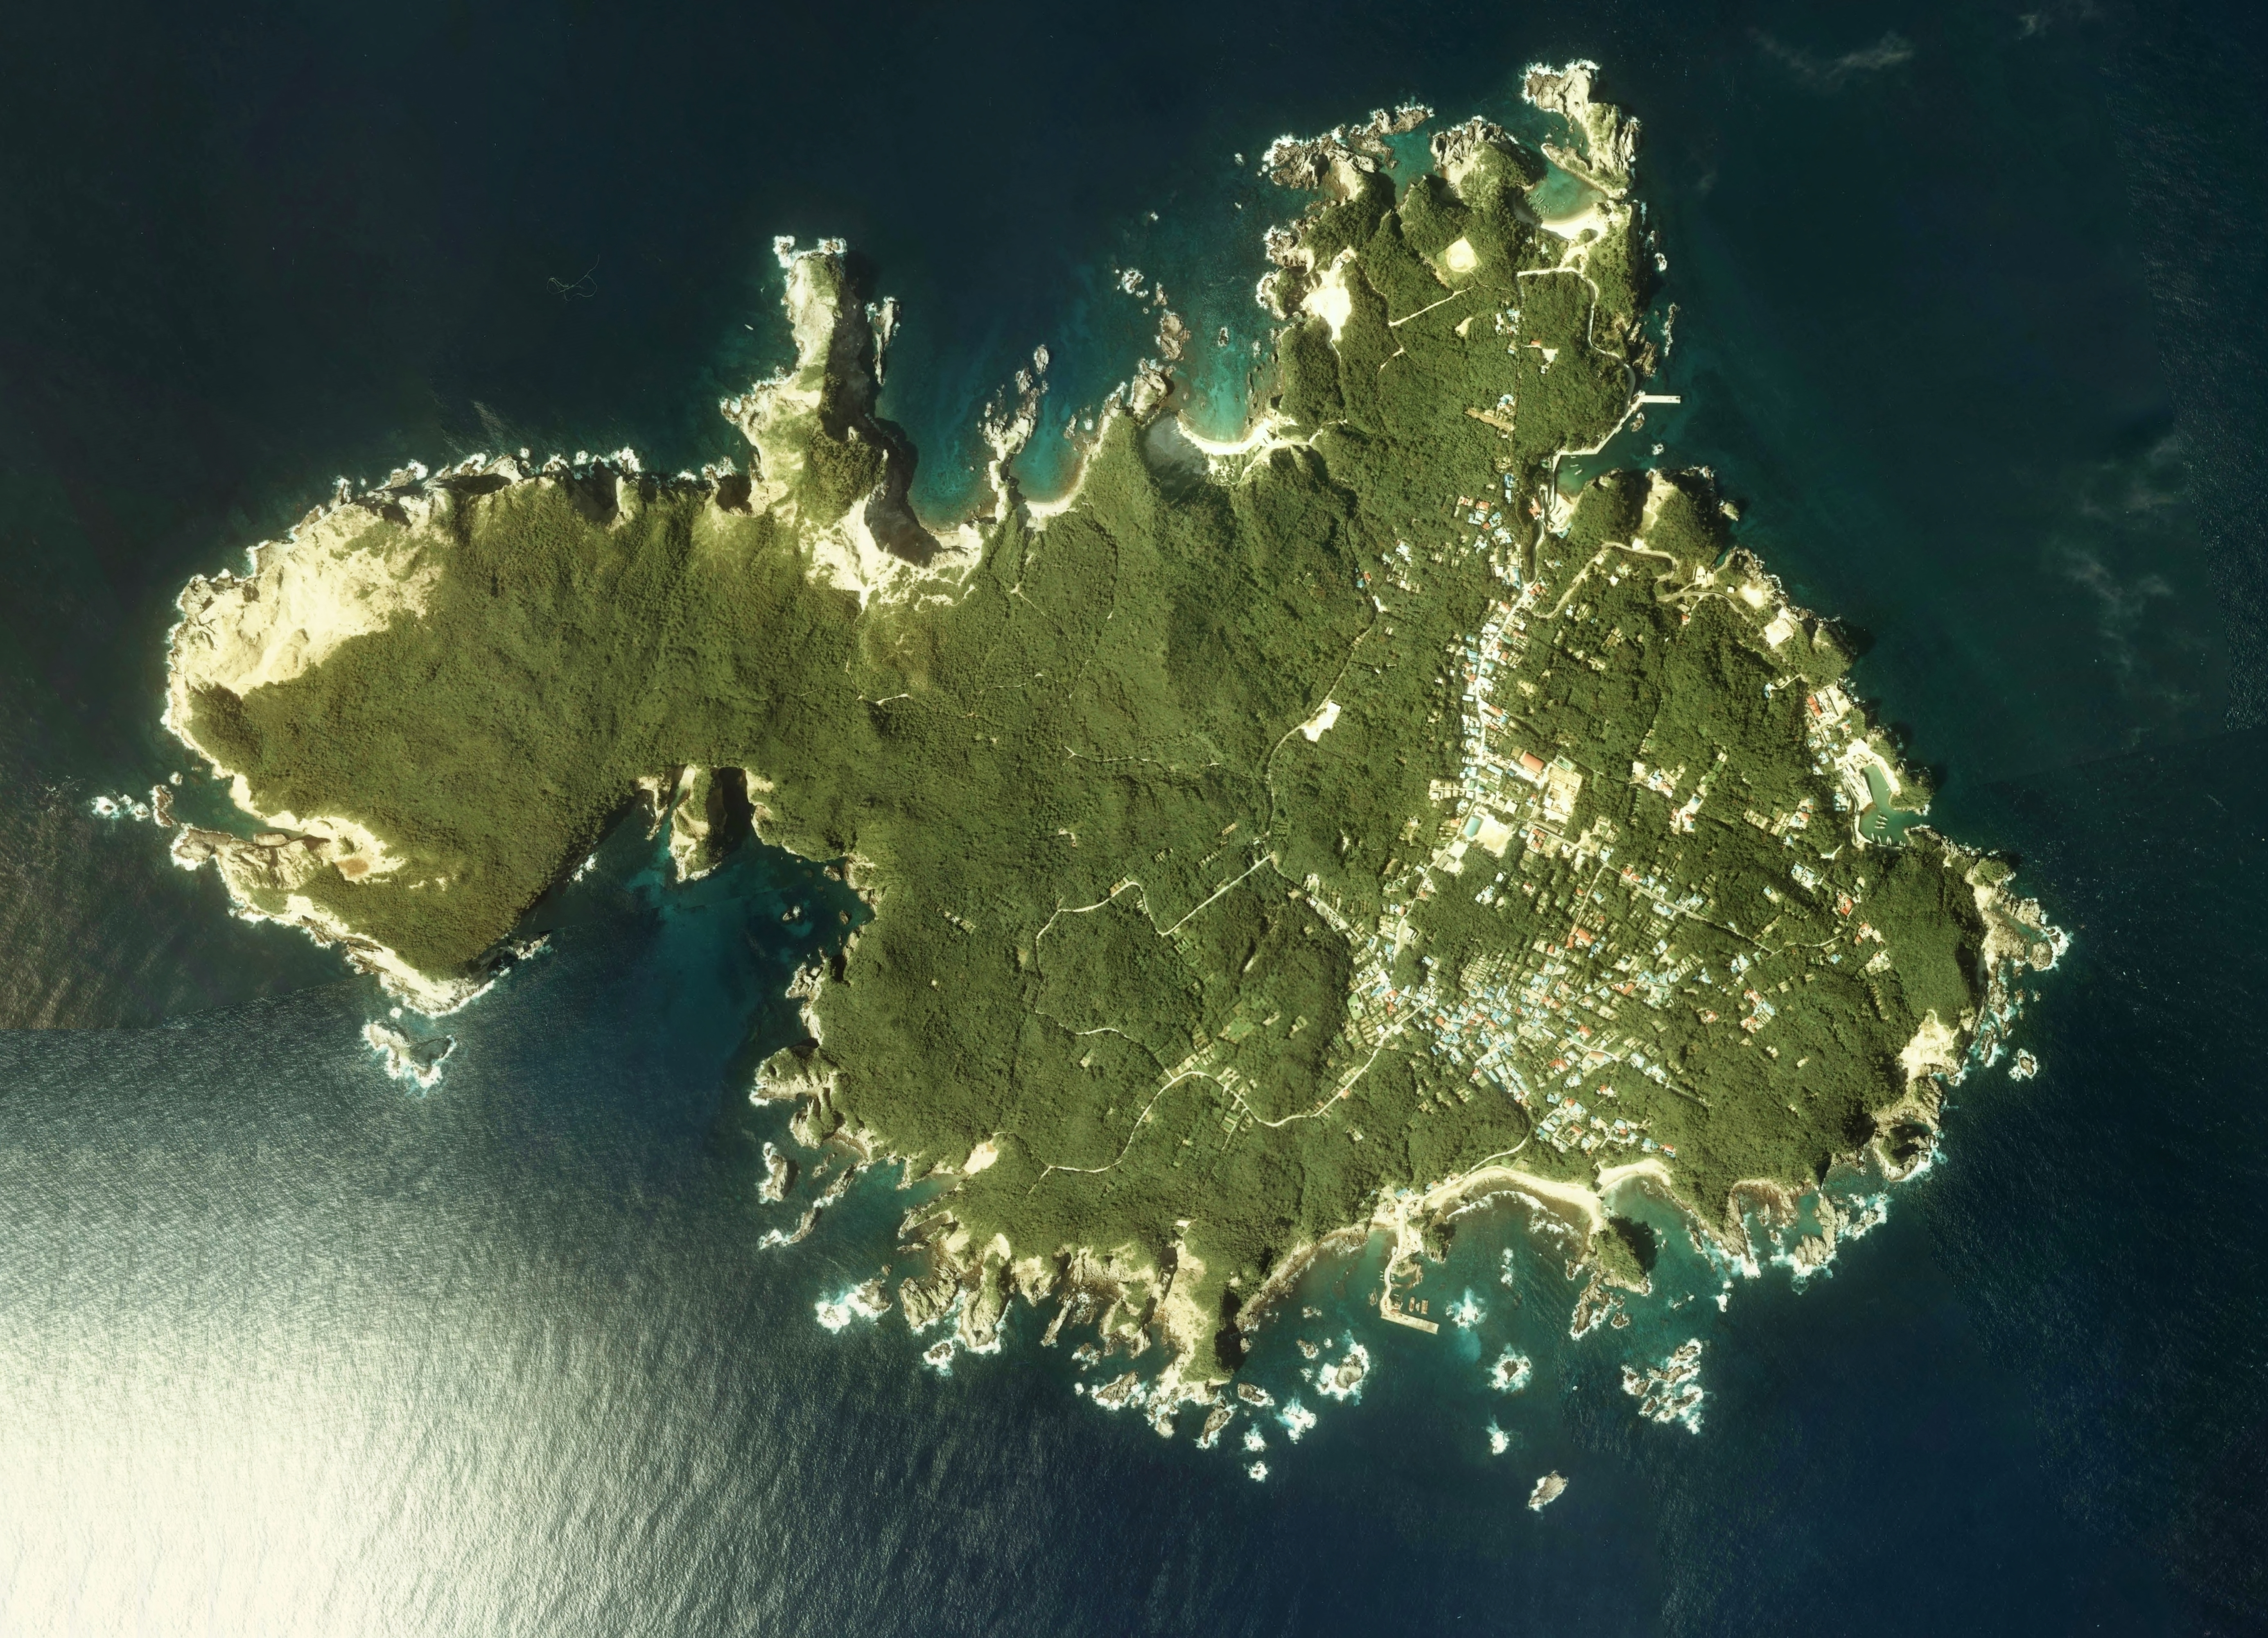 FileShikinejima Island Aerial photograph1978jpg Wikimedia Commons